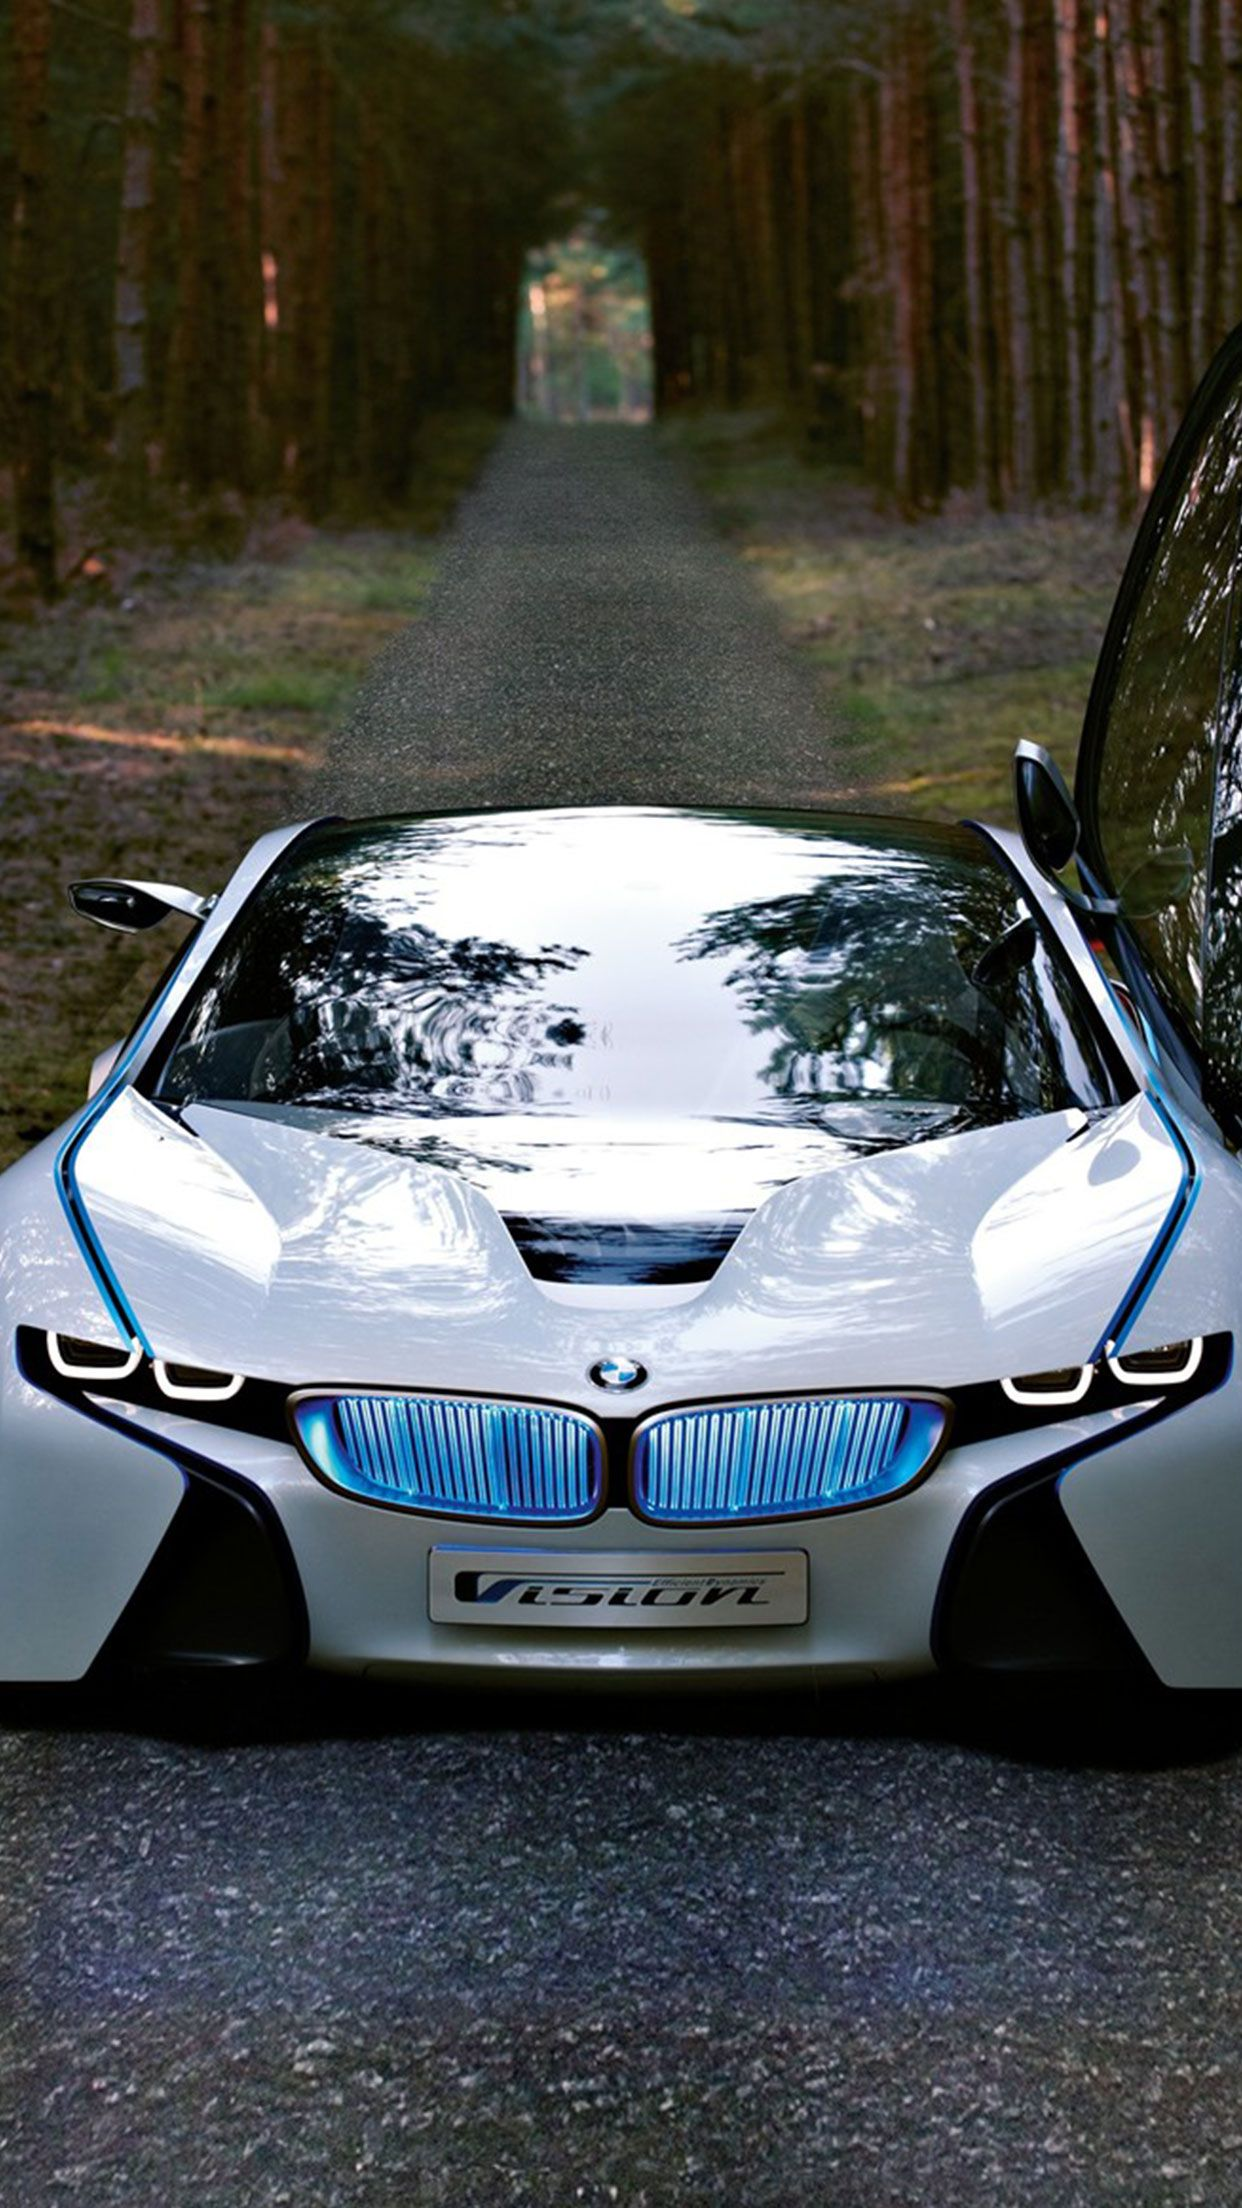 Bmw Car Wallpaper Iphone Android Bmw Car Wallpaper More On